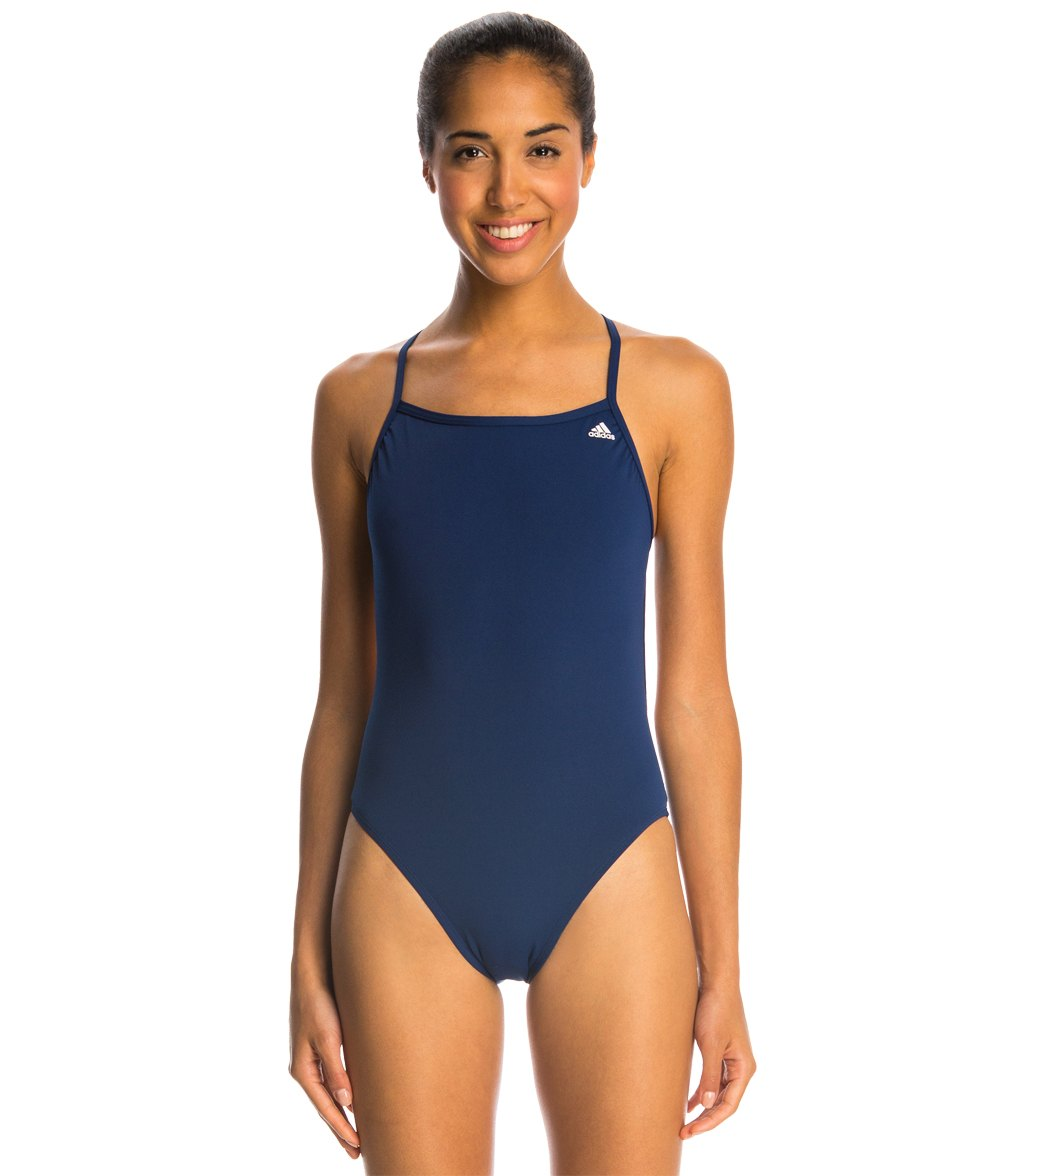 Adidas Swimwear – Search for the Best One!